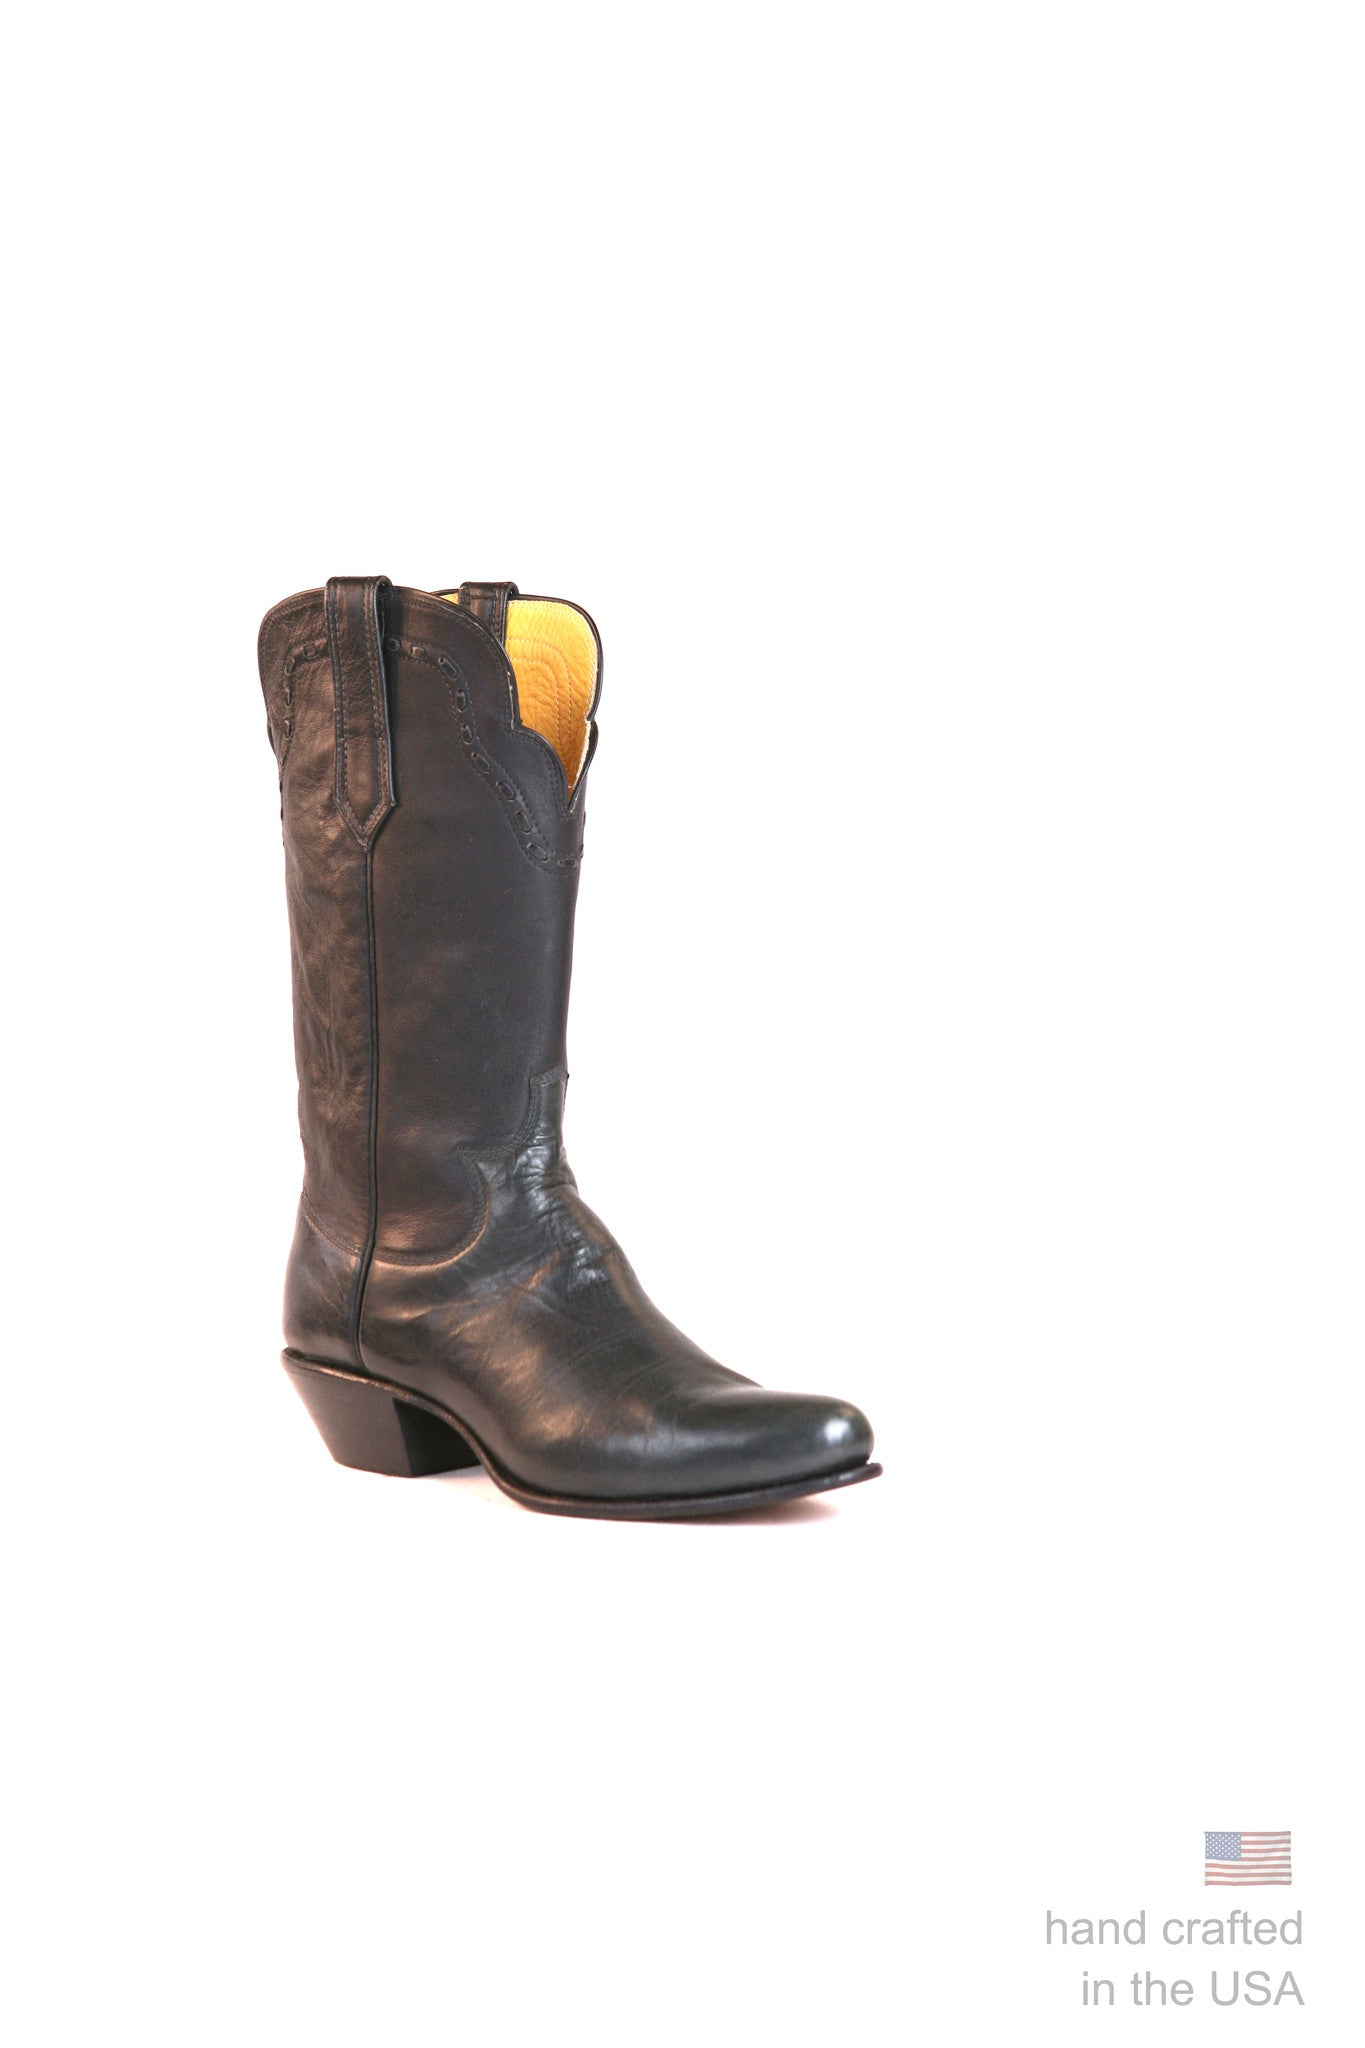 Singles: Boot 0047: Size 7.5 B